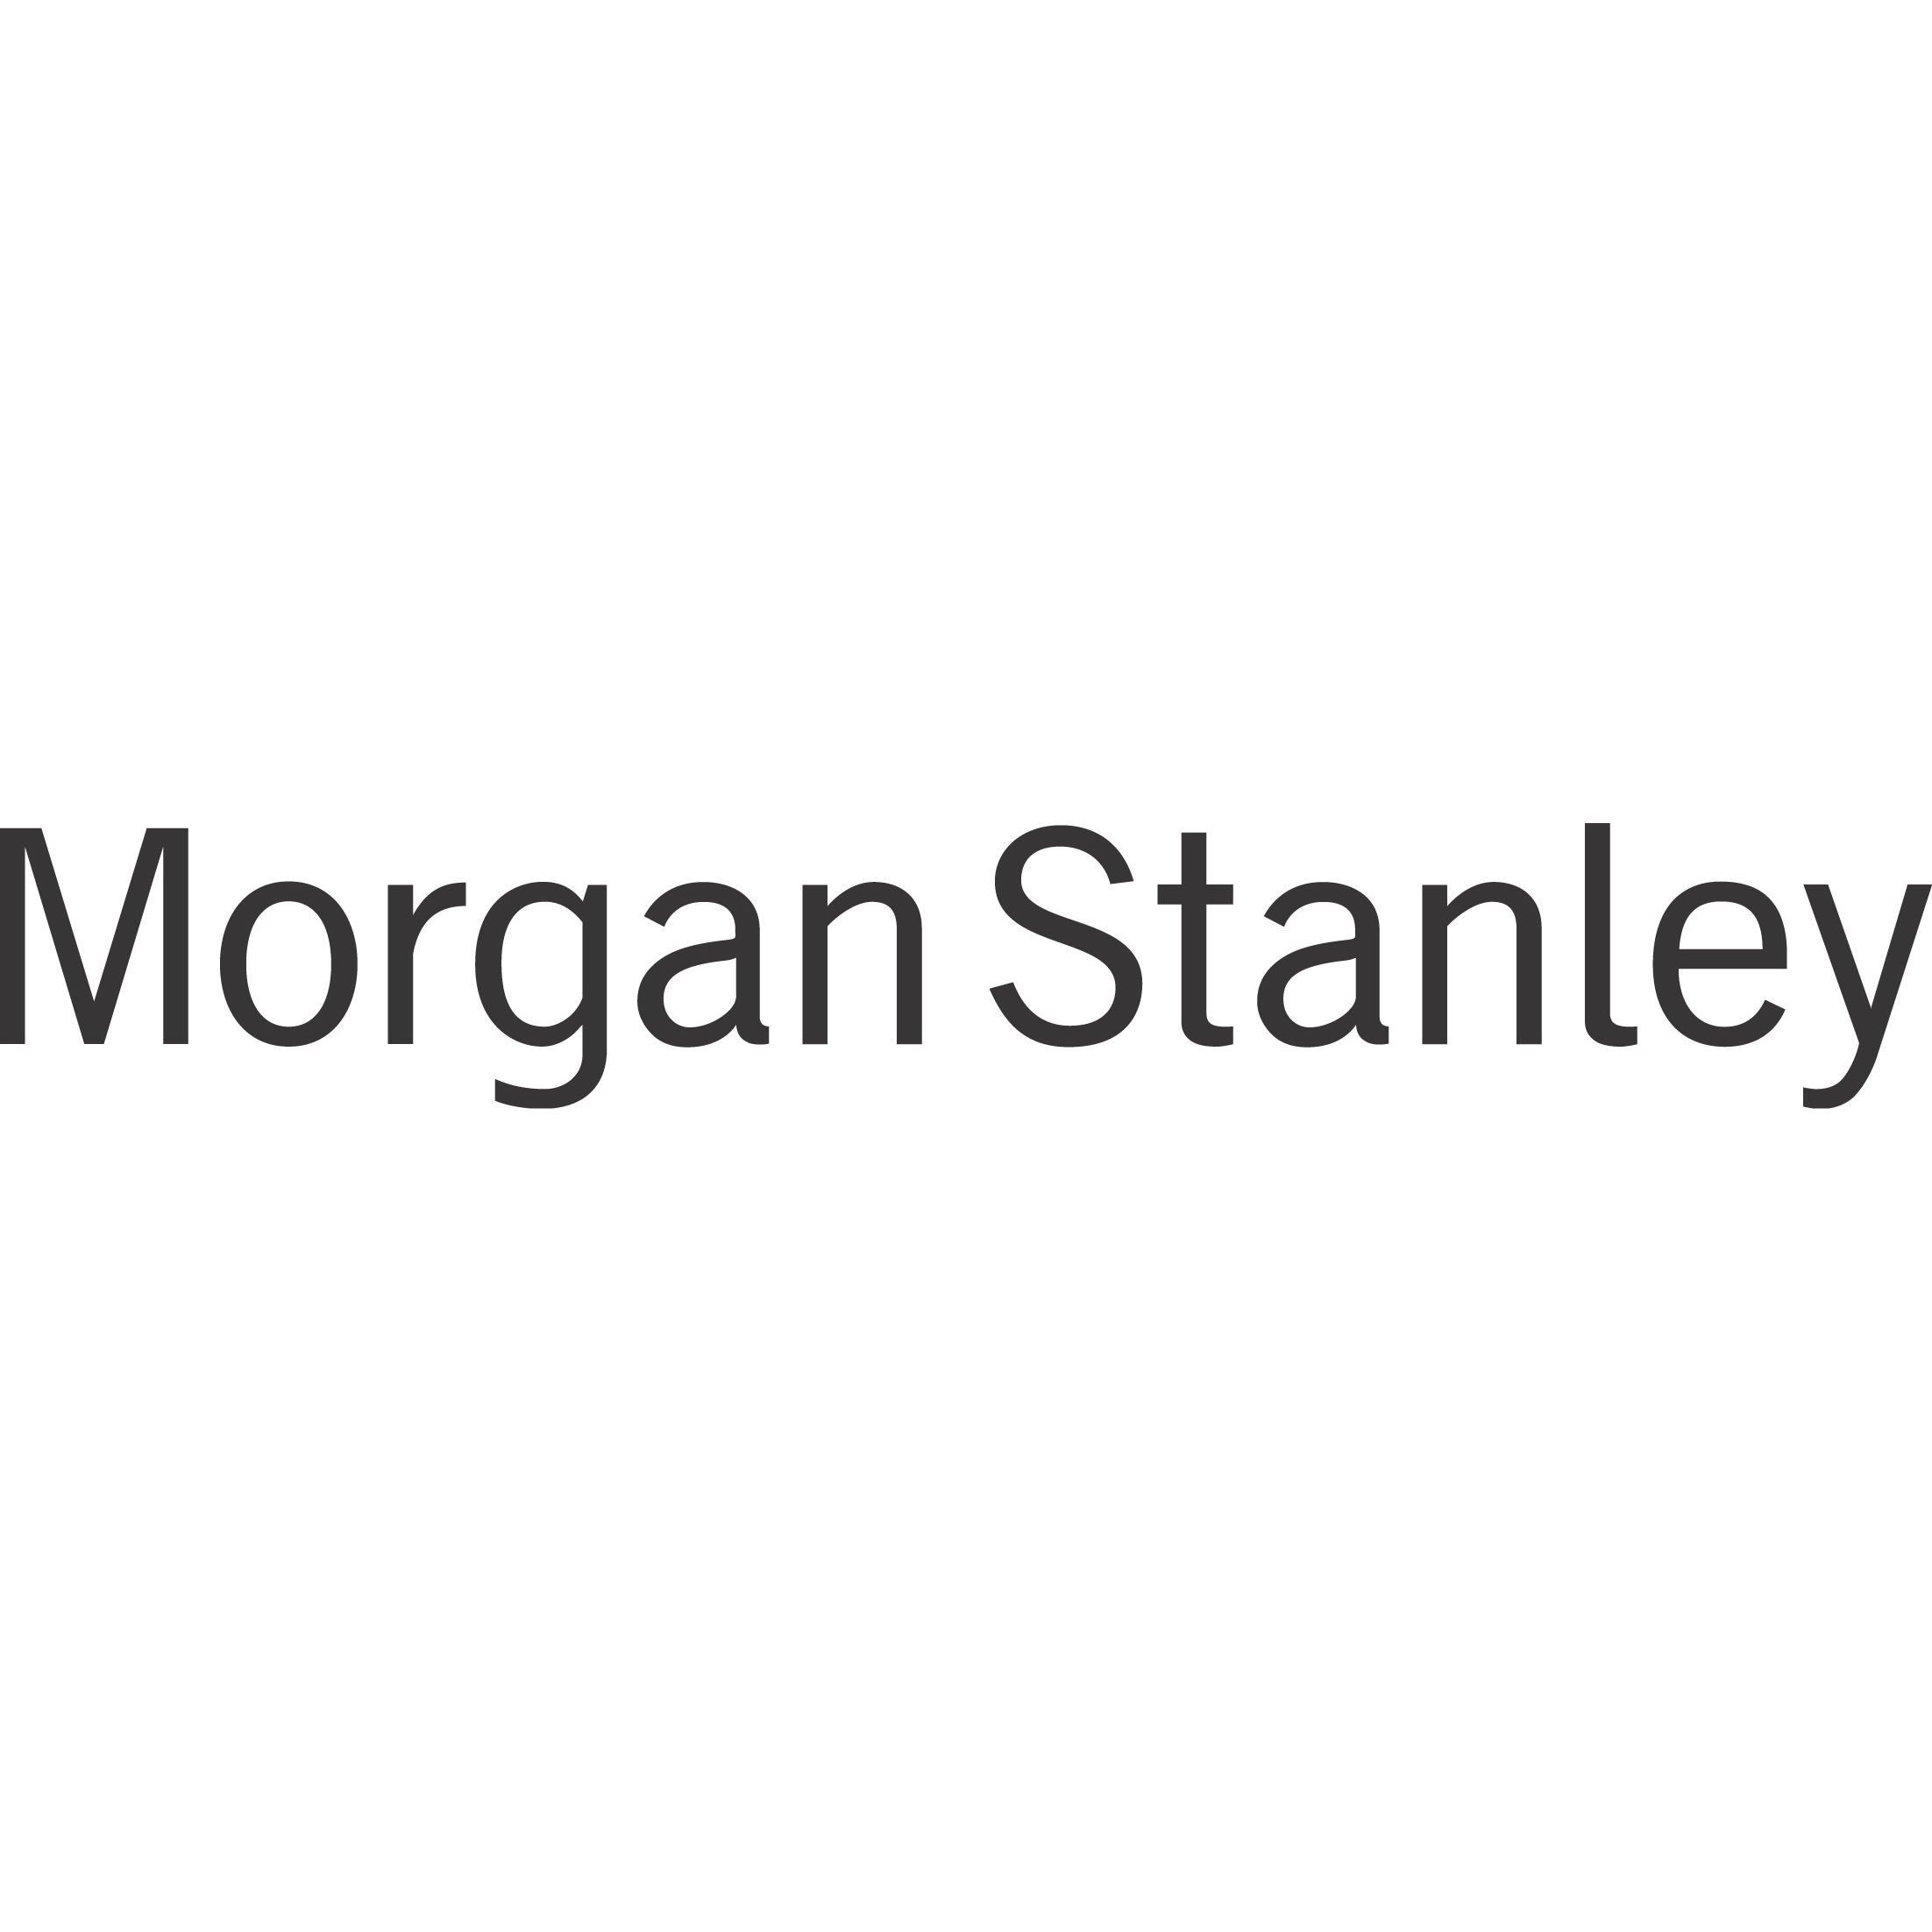 Ernesto Cucalon - Morgan Stanley | Financial Advisor in Miami,Florida